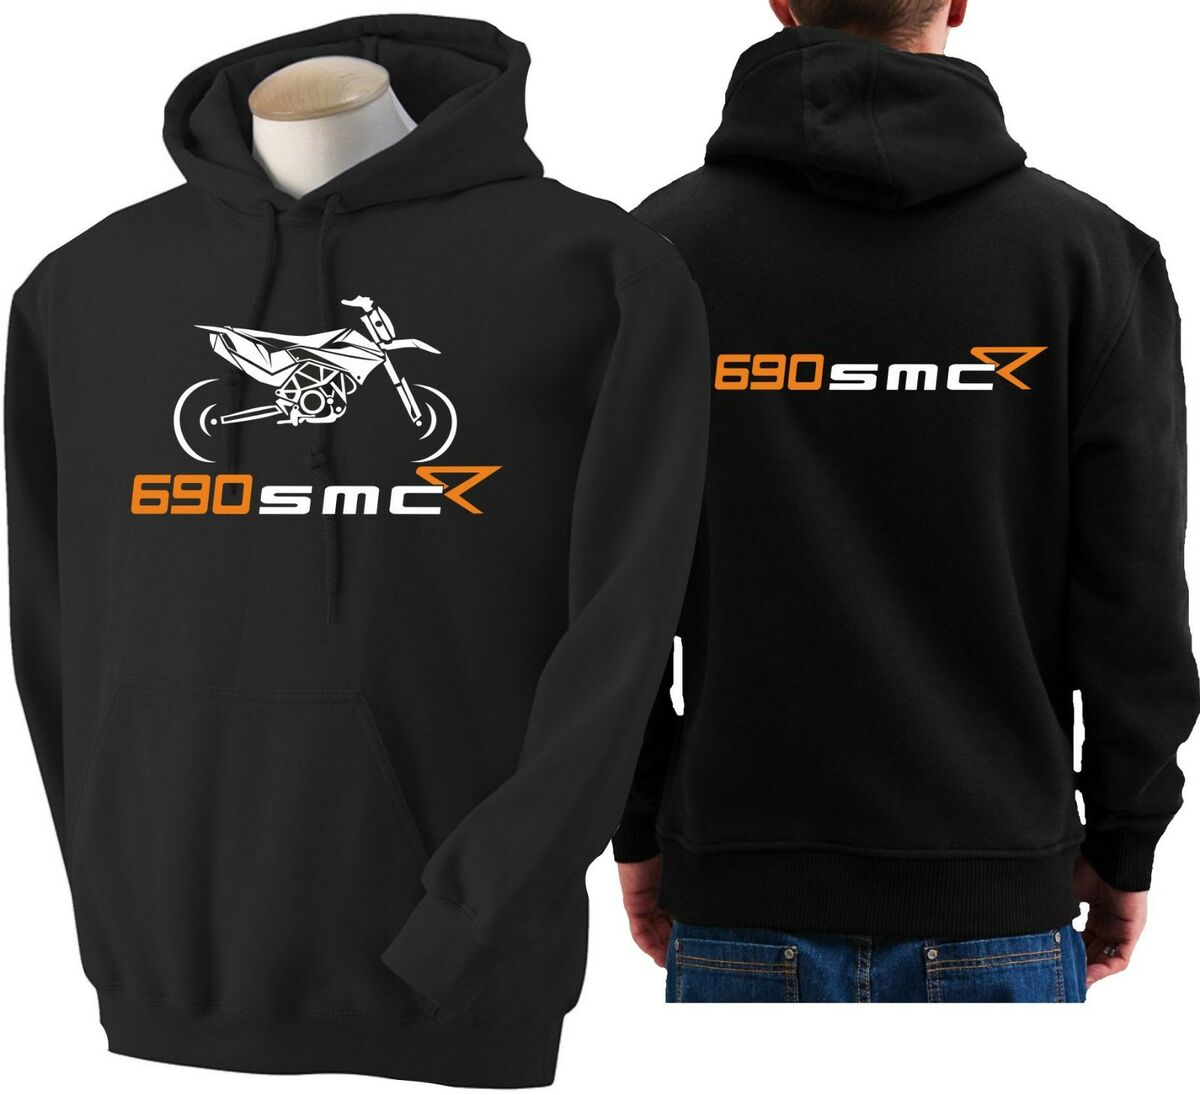 Felpa per moto ktm 690 smc r hoodie sweatshirt bike smc r hoody hooded sweater 